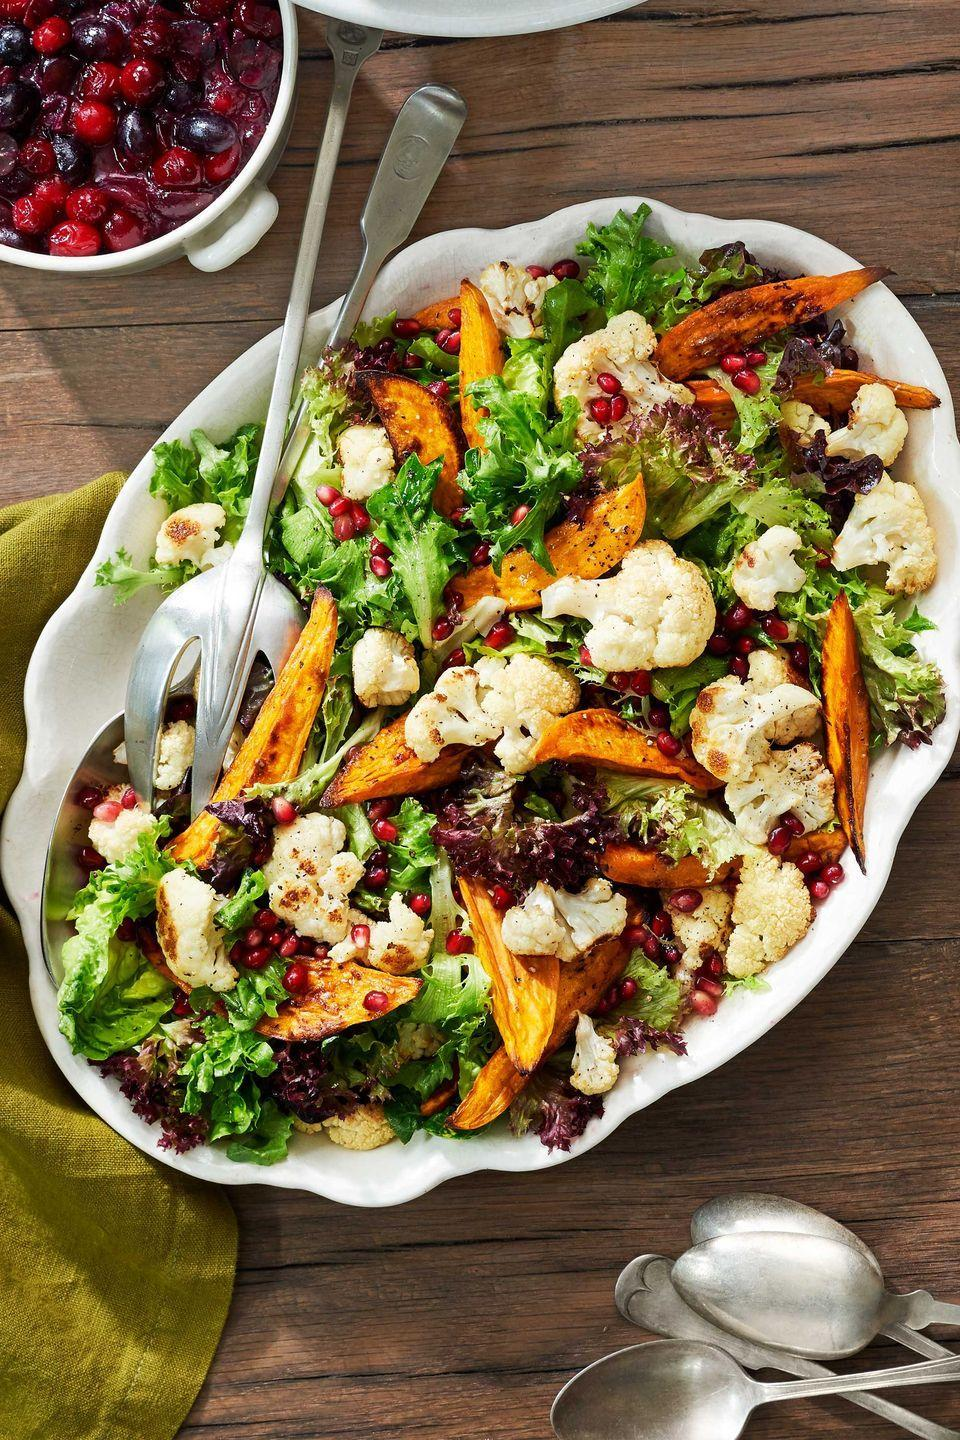 "<p>Pump up a side salad with warm, roasted vegetables. </p><p><strong><a href=""https://www.countryliving.com/food-drinks/recipes/a40029/sweet-potato-and-cauliflower-salad-recipe/"" rel=""nofollow noopener"" target=""_blank"" data-ylk=""slk:Get the recipe"" class=""link rapid-noclick-resp"">Get the recipe</a>.</strong><br></p><p><a class=""link rapid-noclick-resp"" href=""https://www.amazon.com/dp/B00INRW7GC?tag=syn-yahoo-20&ascsubtag=%5Bartid%7C10050.g.896%5Bsrc%7Cyahoo-us"" rel=""nofollow noopener"" target=""_blank"" data-ylk=""slk:SHOP BAKING SHEETS"">SHOP BAKING SHEETS</a></p>"